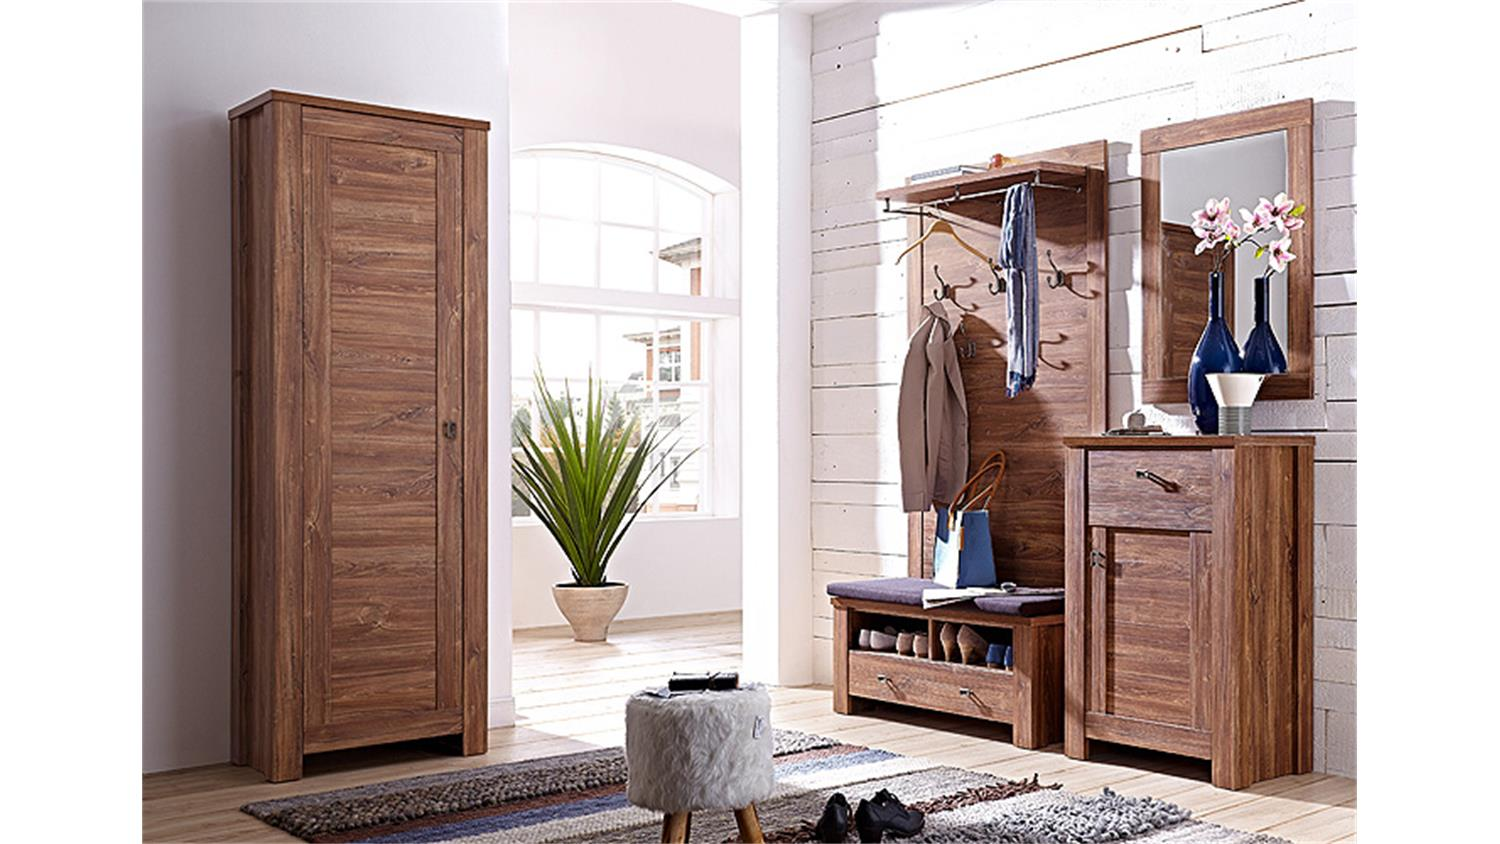 garderobenpaneel br ssel garderobe paneel akazie dunkel. Black Bedroom Furniture Sets. Home Design Ideas